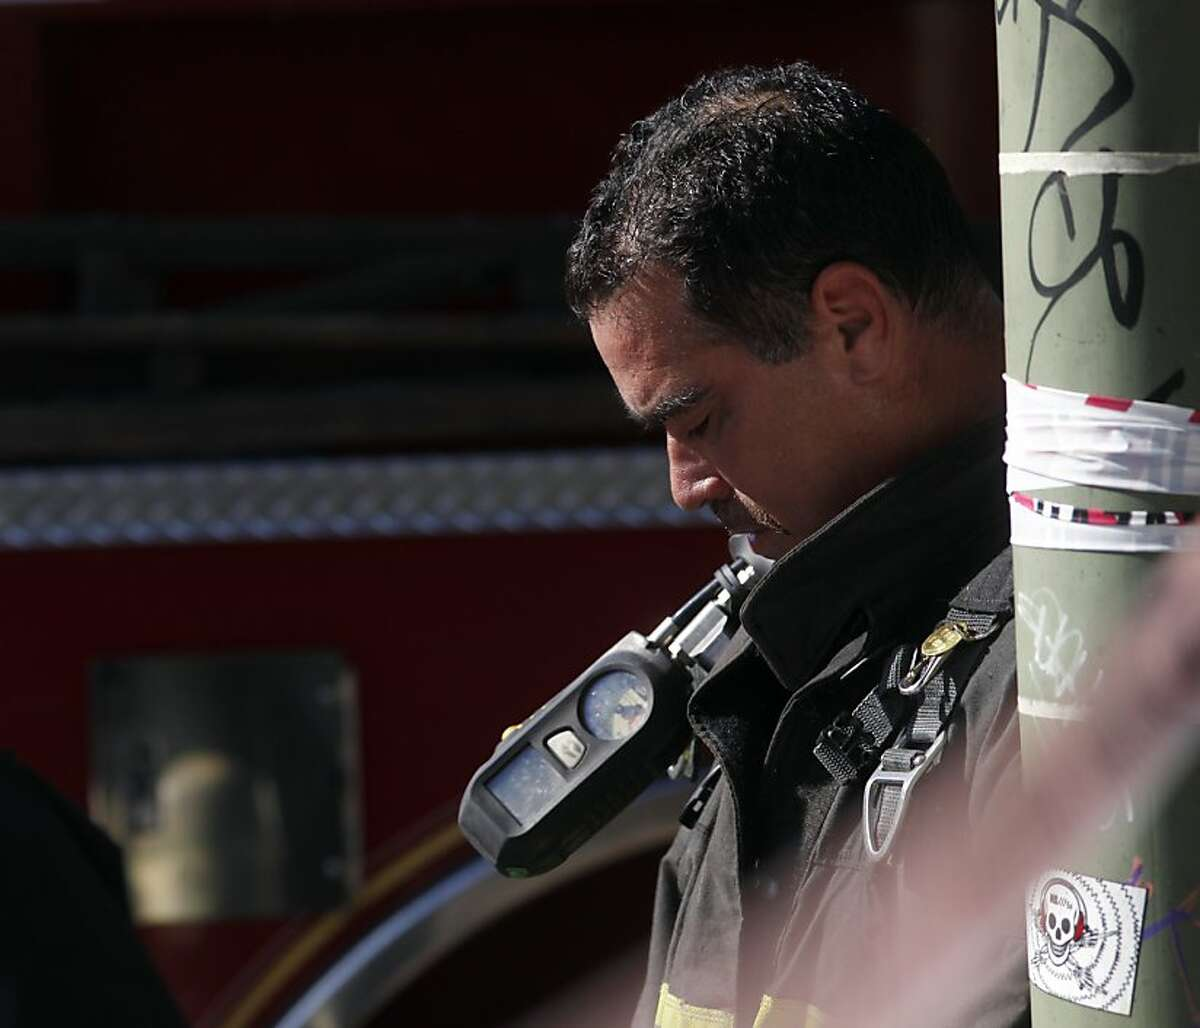 A fire fighter from the Oakland Station 20 catches his breath after coming out of the fire at the Zion's First Church of God in Christ, Monday September 23, 2013, in Oakland, Calif.